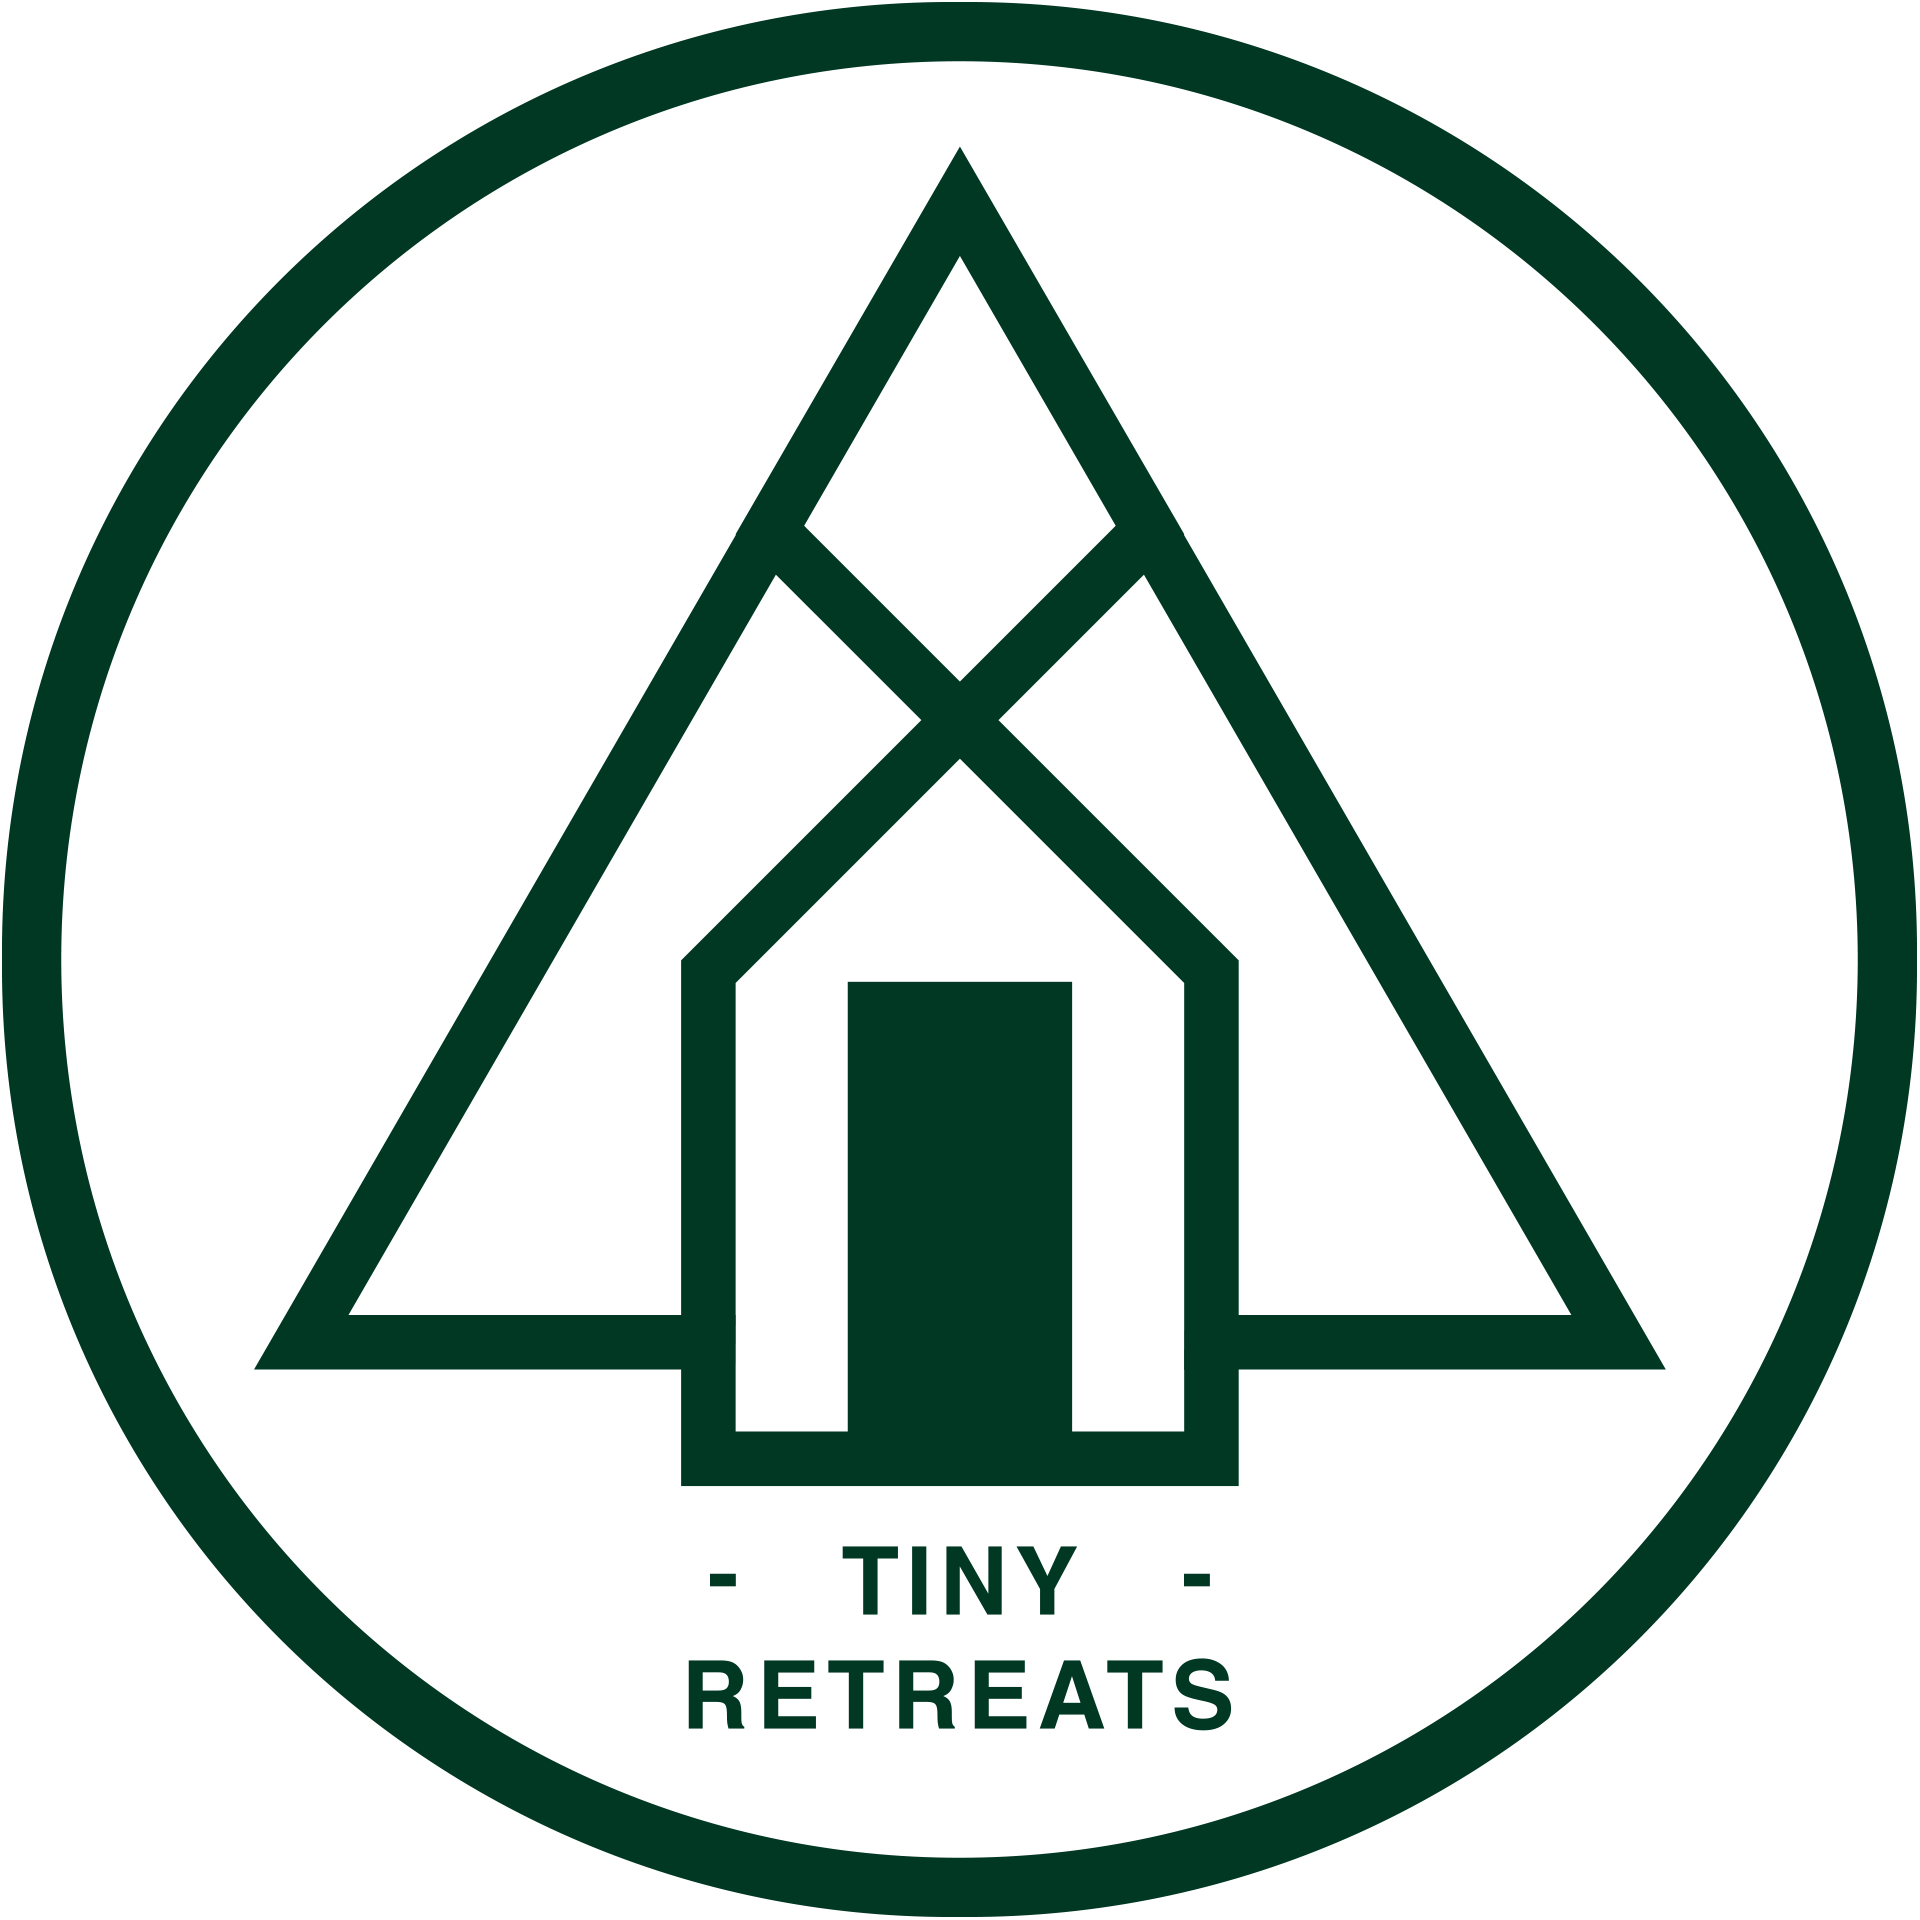 tiny retreats logo green circle with a house inside